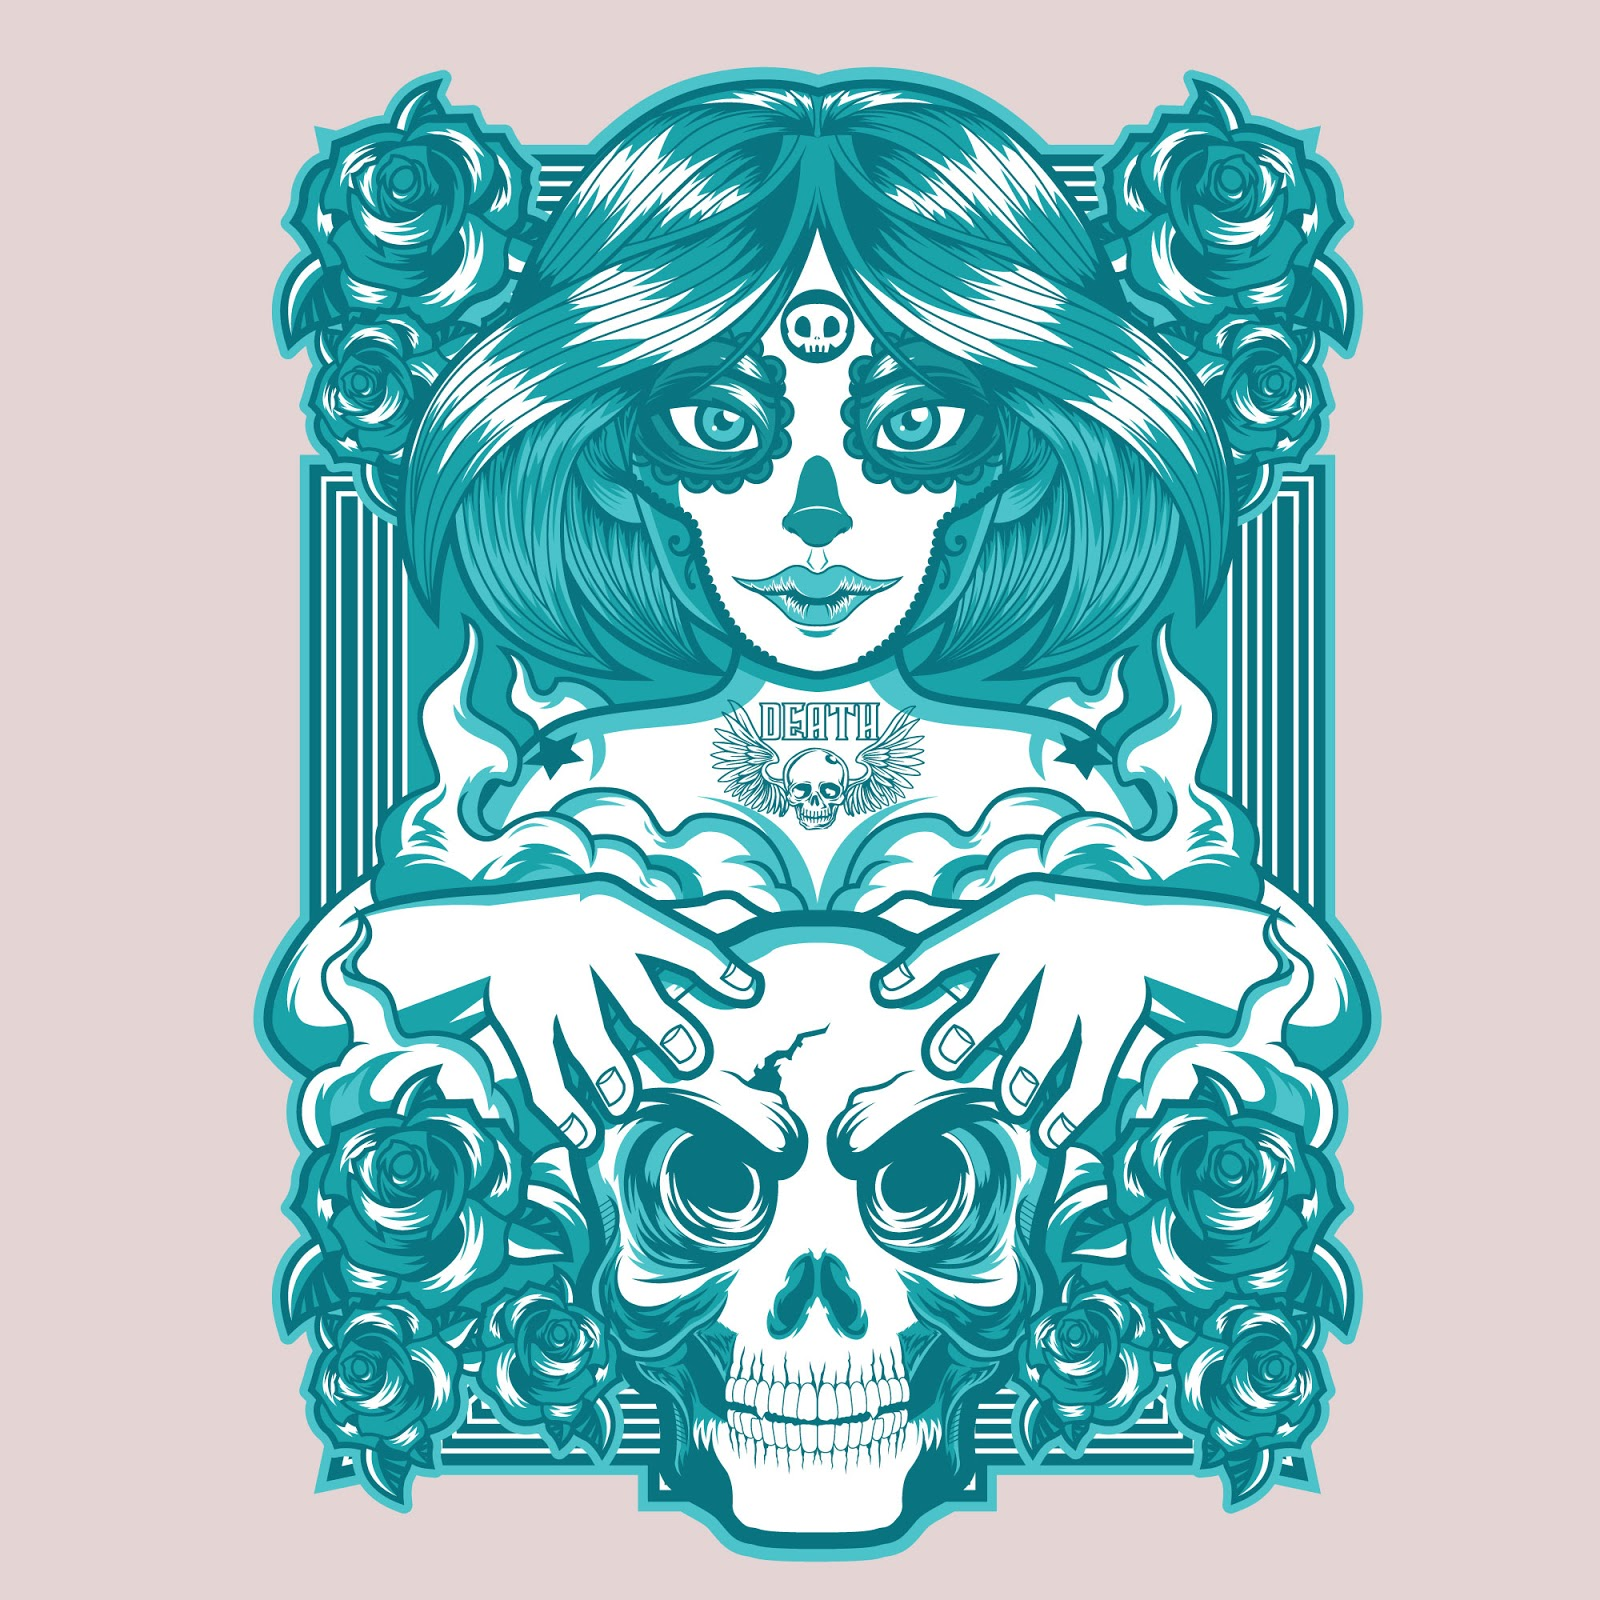 Skull Girl T Shirt Design Free Download Vector CDR, AI, EPS and PNG Formats